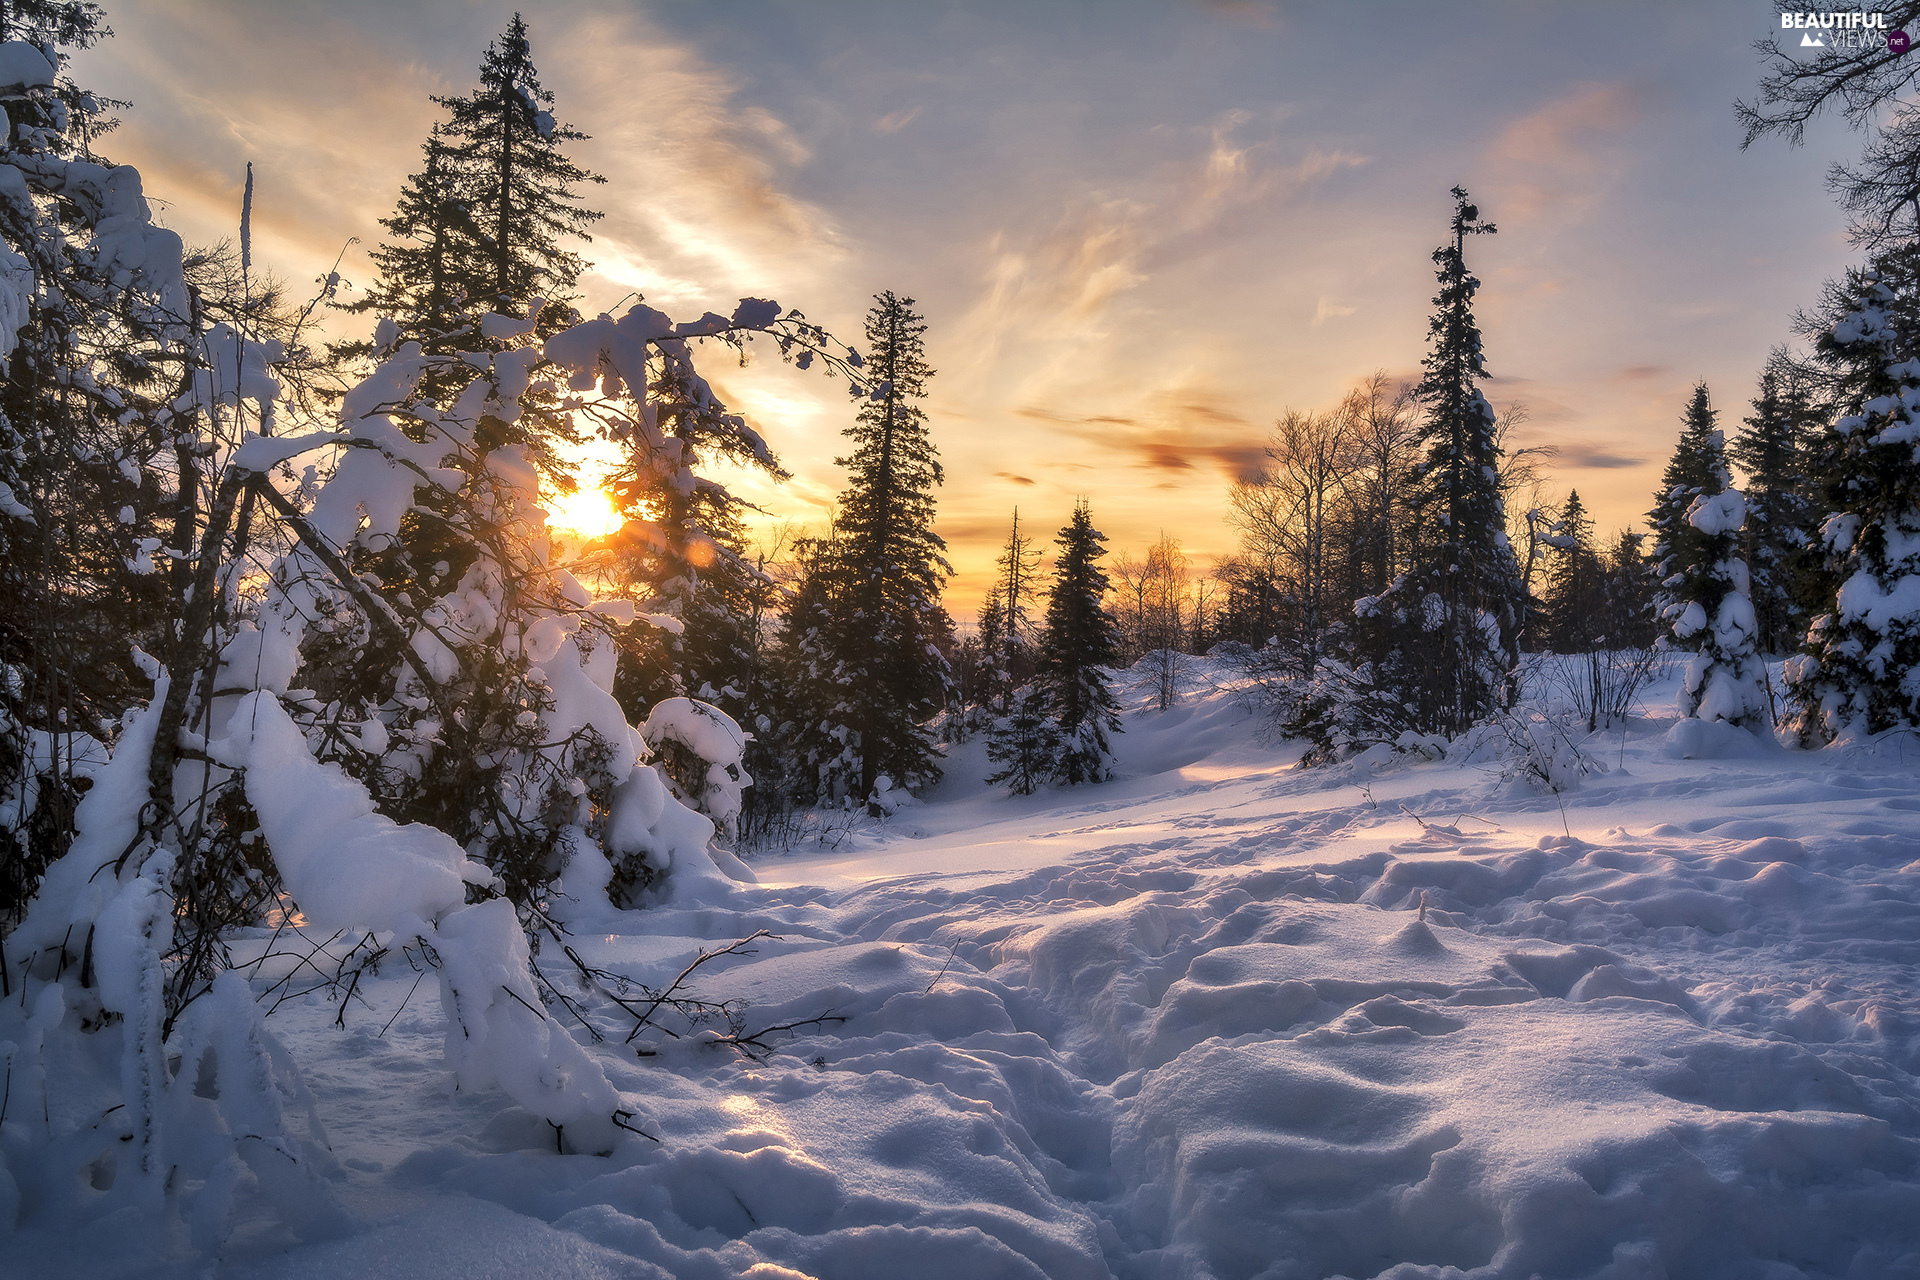 Sunrise, winter, trees, viewes, Snowy, snow